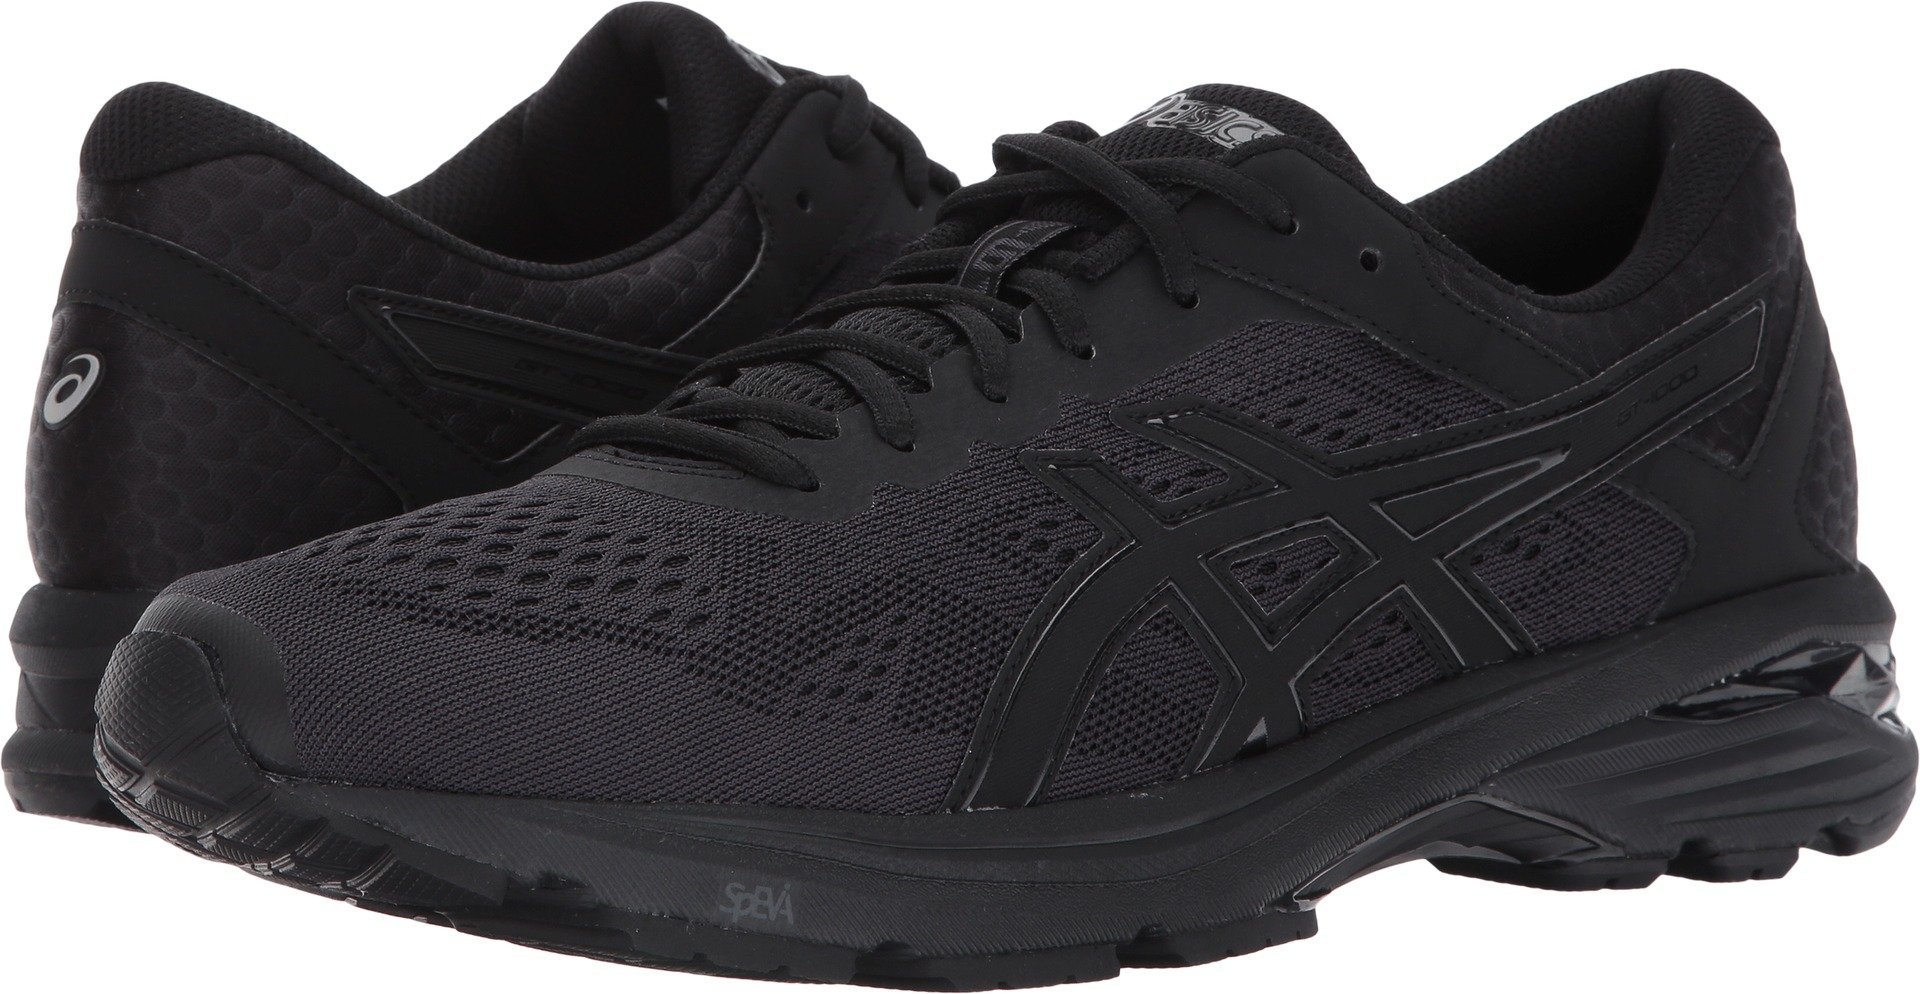 ASICS Men's GT-1000 6 Running Shoe, Black/Black/Silver, 10.5 Medium US